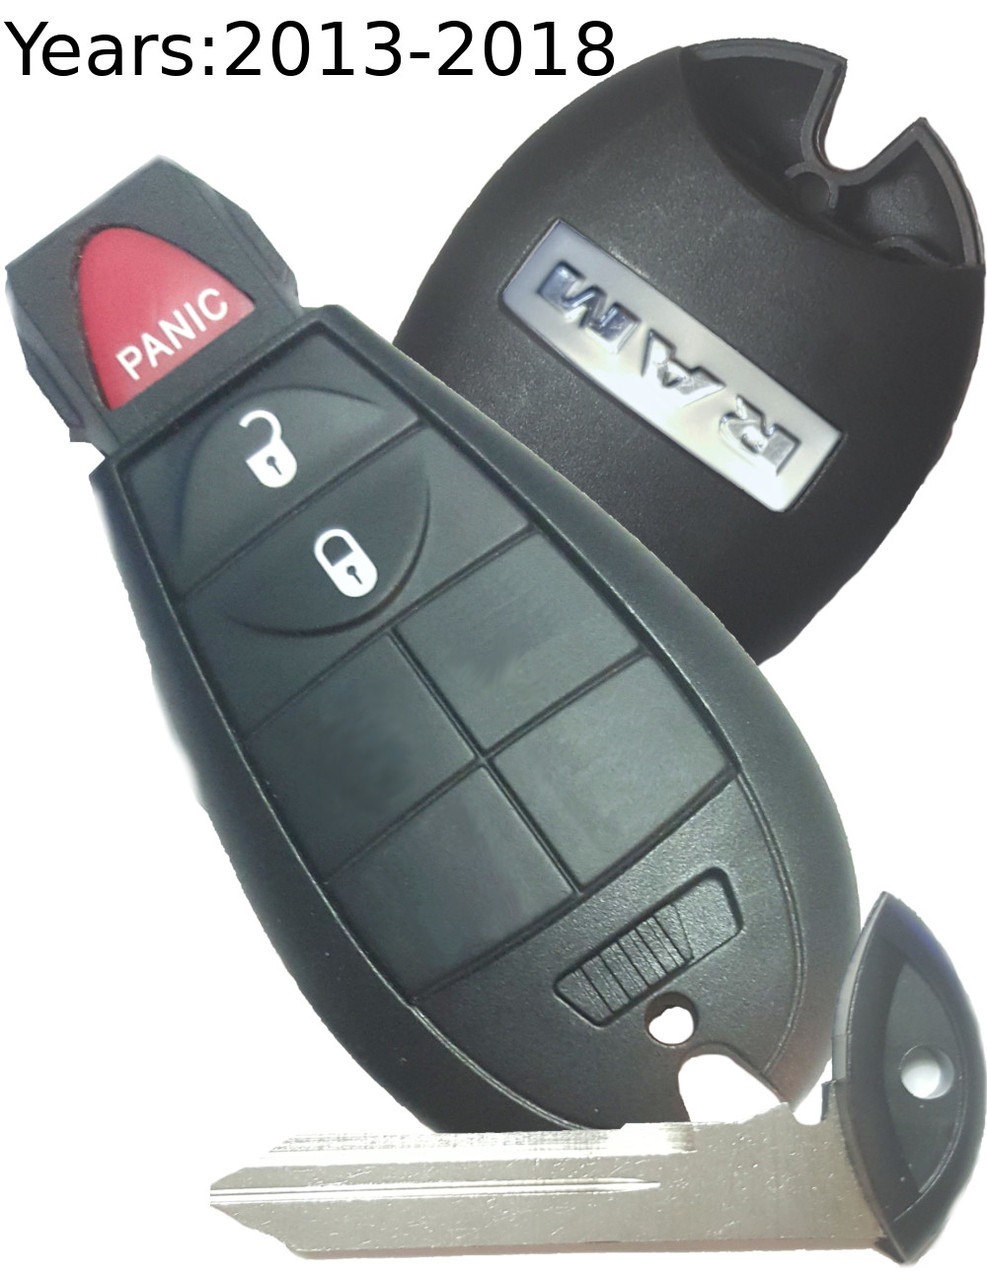 small resolution of 2013 to 2017 dodge ram 3 button remote key